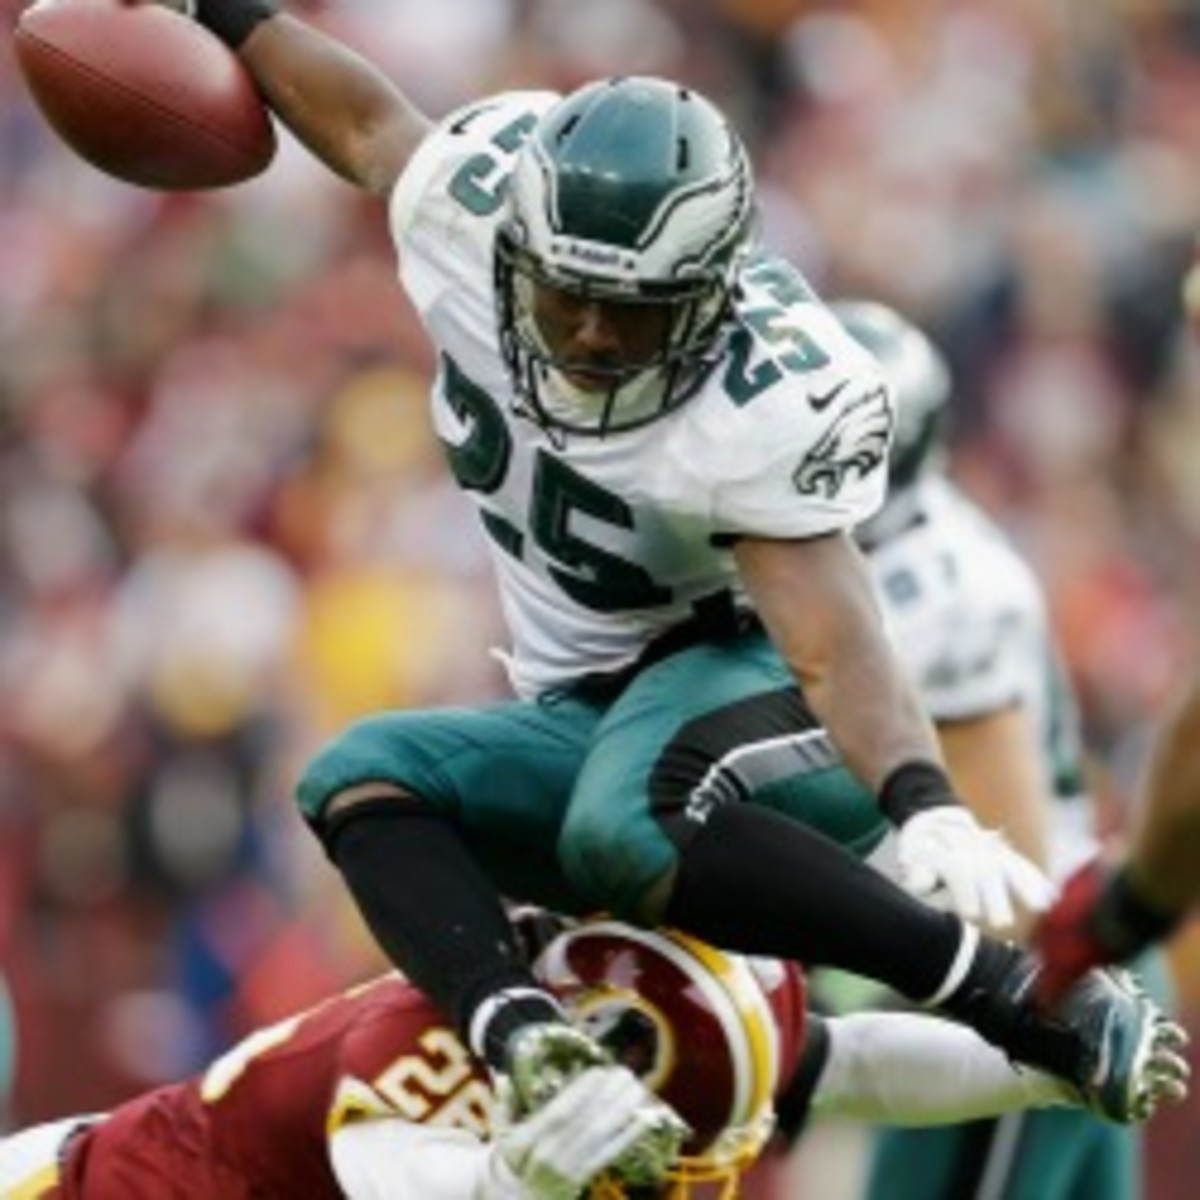 Eagles running back LeSean McCoy will be back on the field Sunday after missing four games. (Bob Carr/Getty Images)